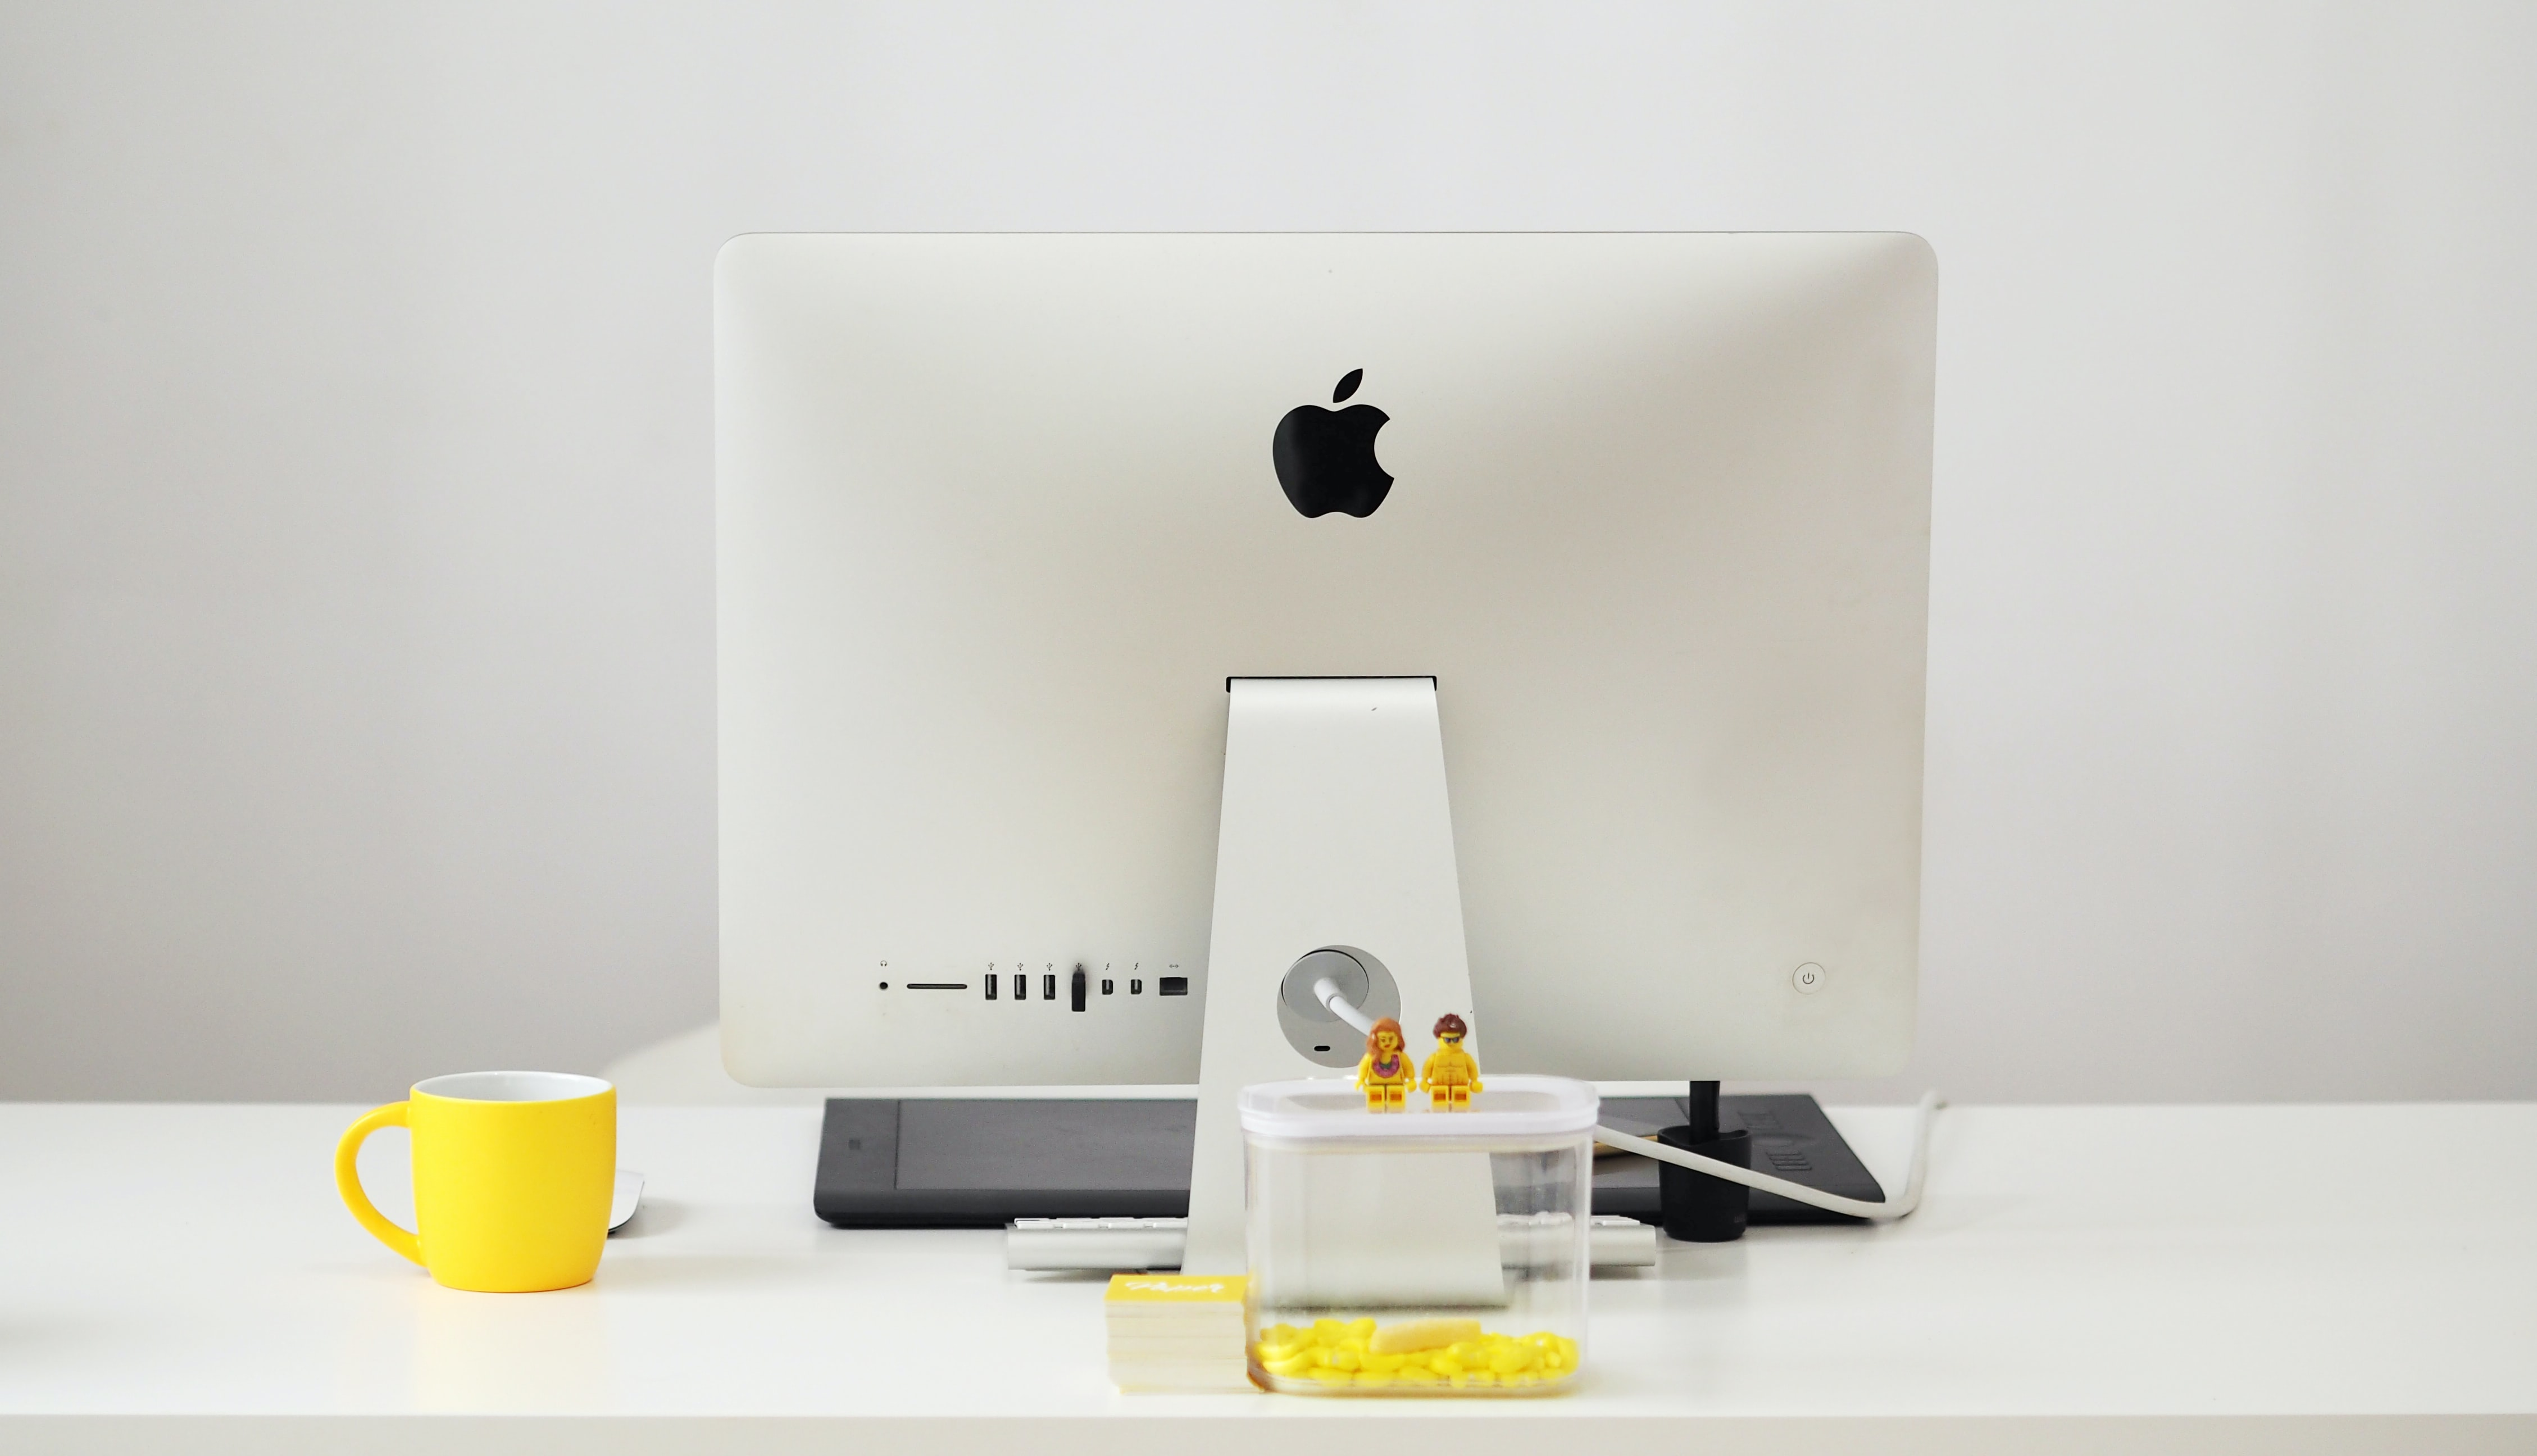 silver iMac beside yellow mug